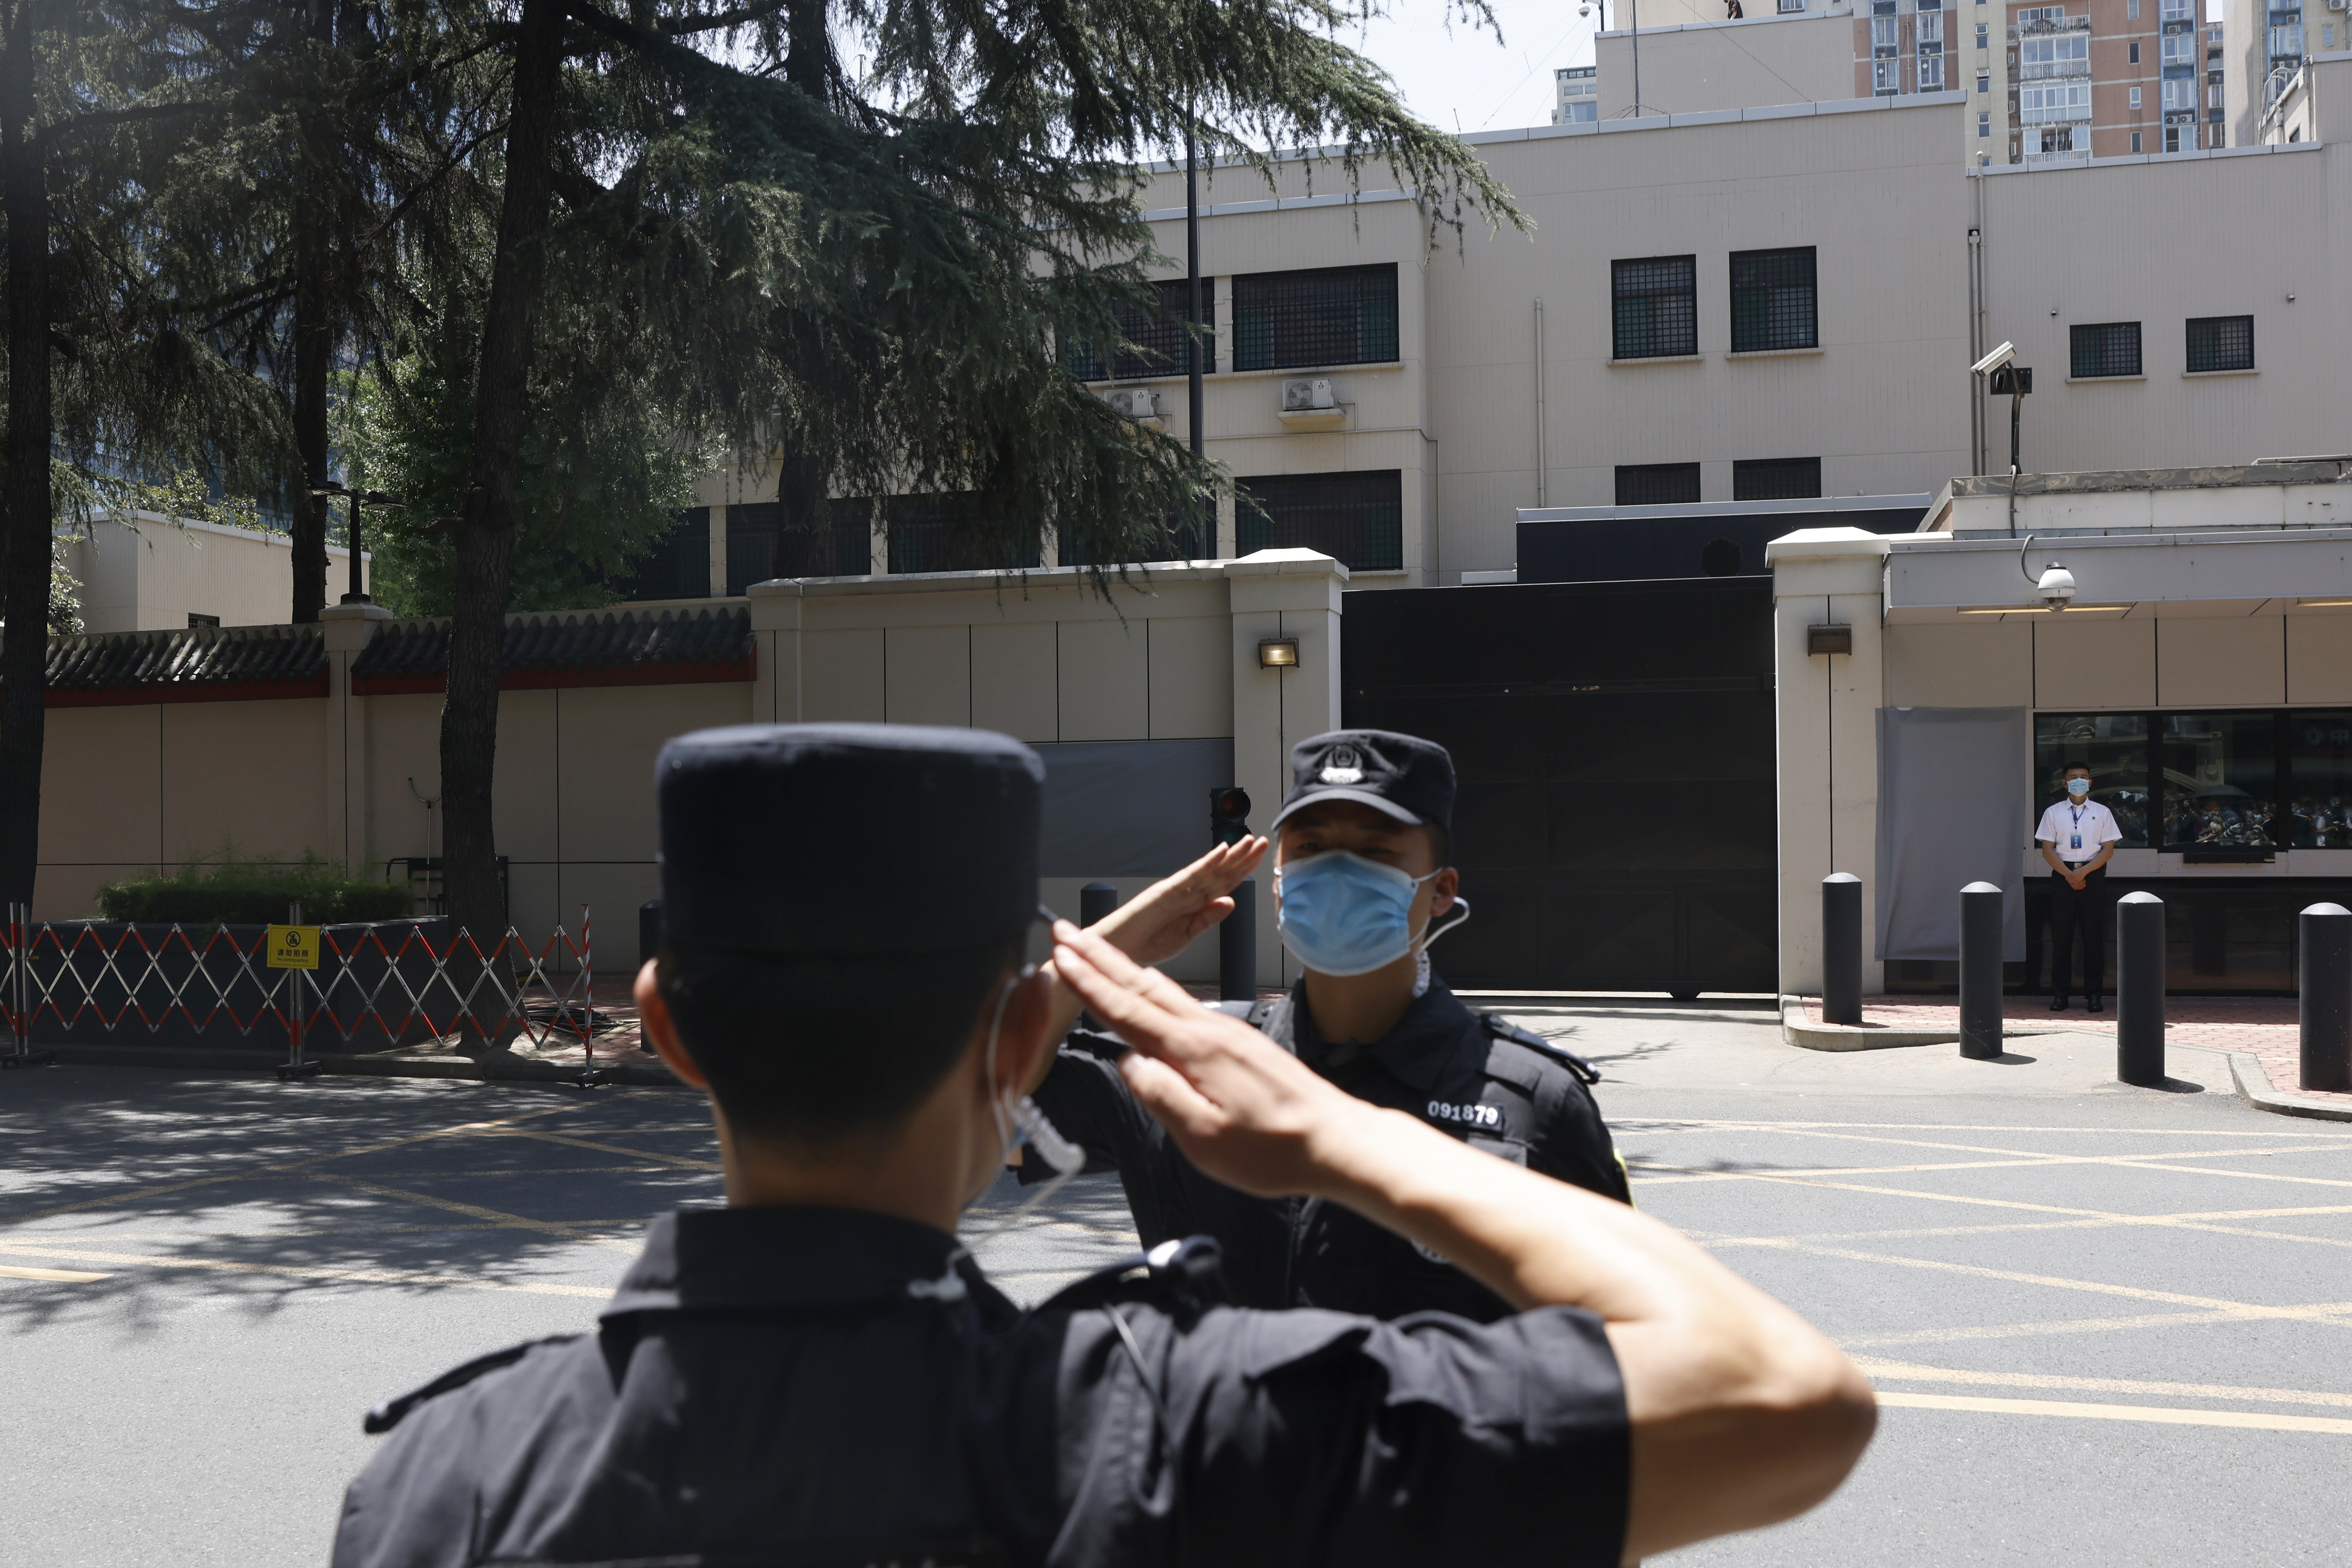 Chinese SWAT officers salute each other at the former United States Consulate in Chengdu in southwest China's Sichuan province on Monday, July 27, 2020. Chinese authorities took control of the former U.S. consulate in the southwestern Chinese city on Monday after it was ordered closed amid rising tensions between the global powers.